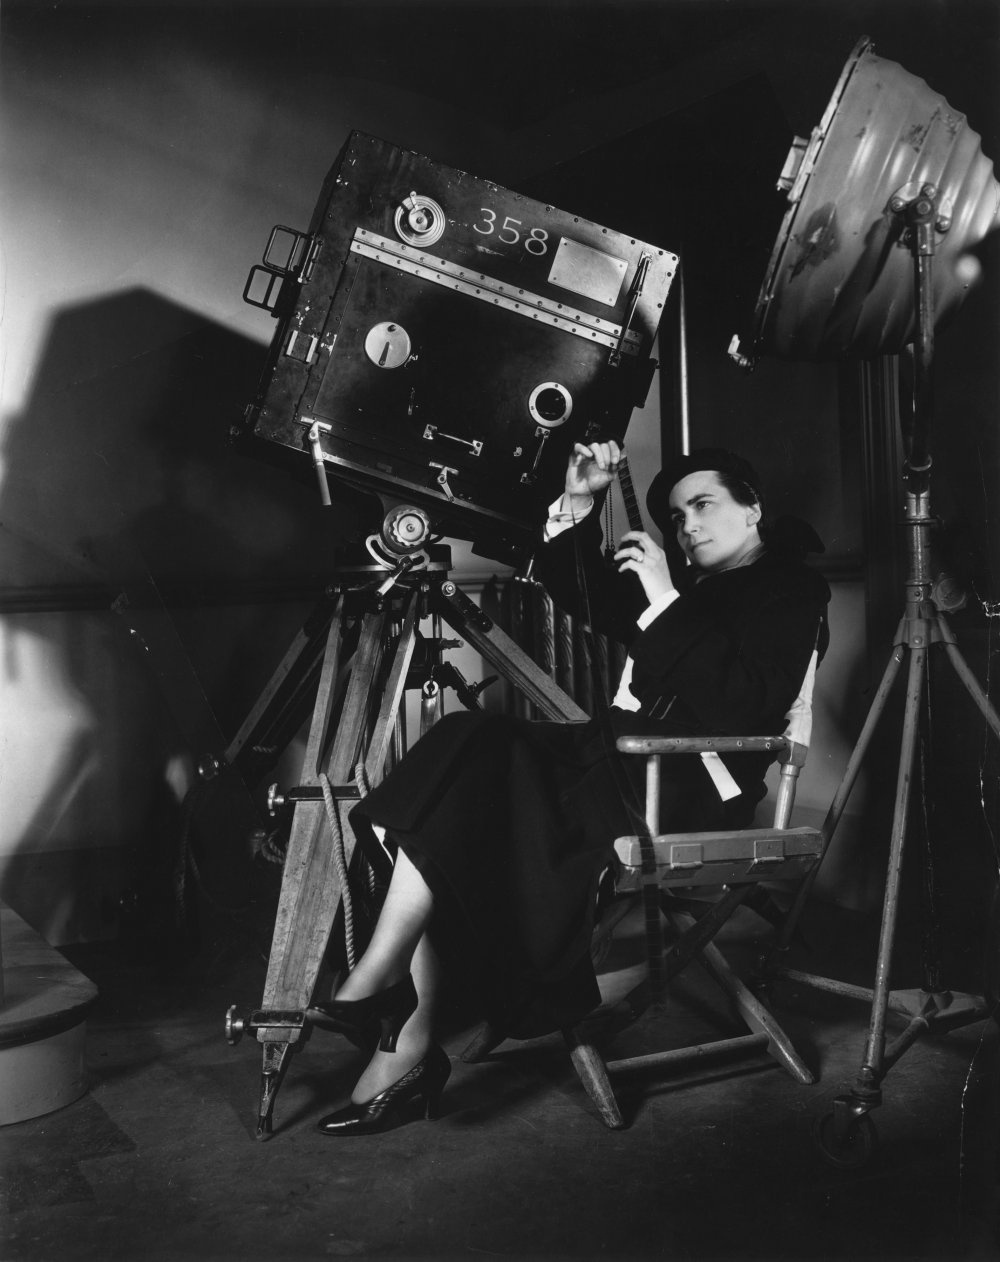 Dorothy Arzner, Hollywood's most prolific female studio director, directing Merrily We Go to Hell (1932)